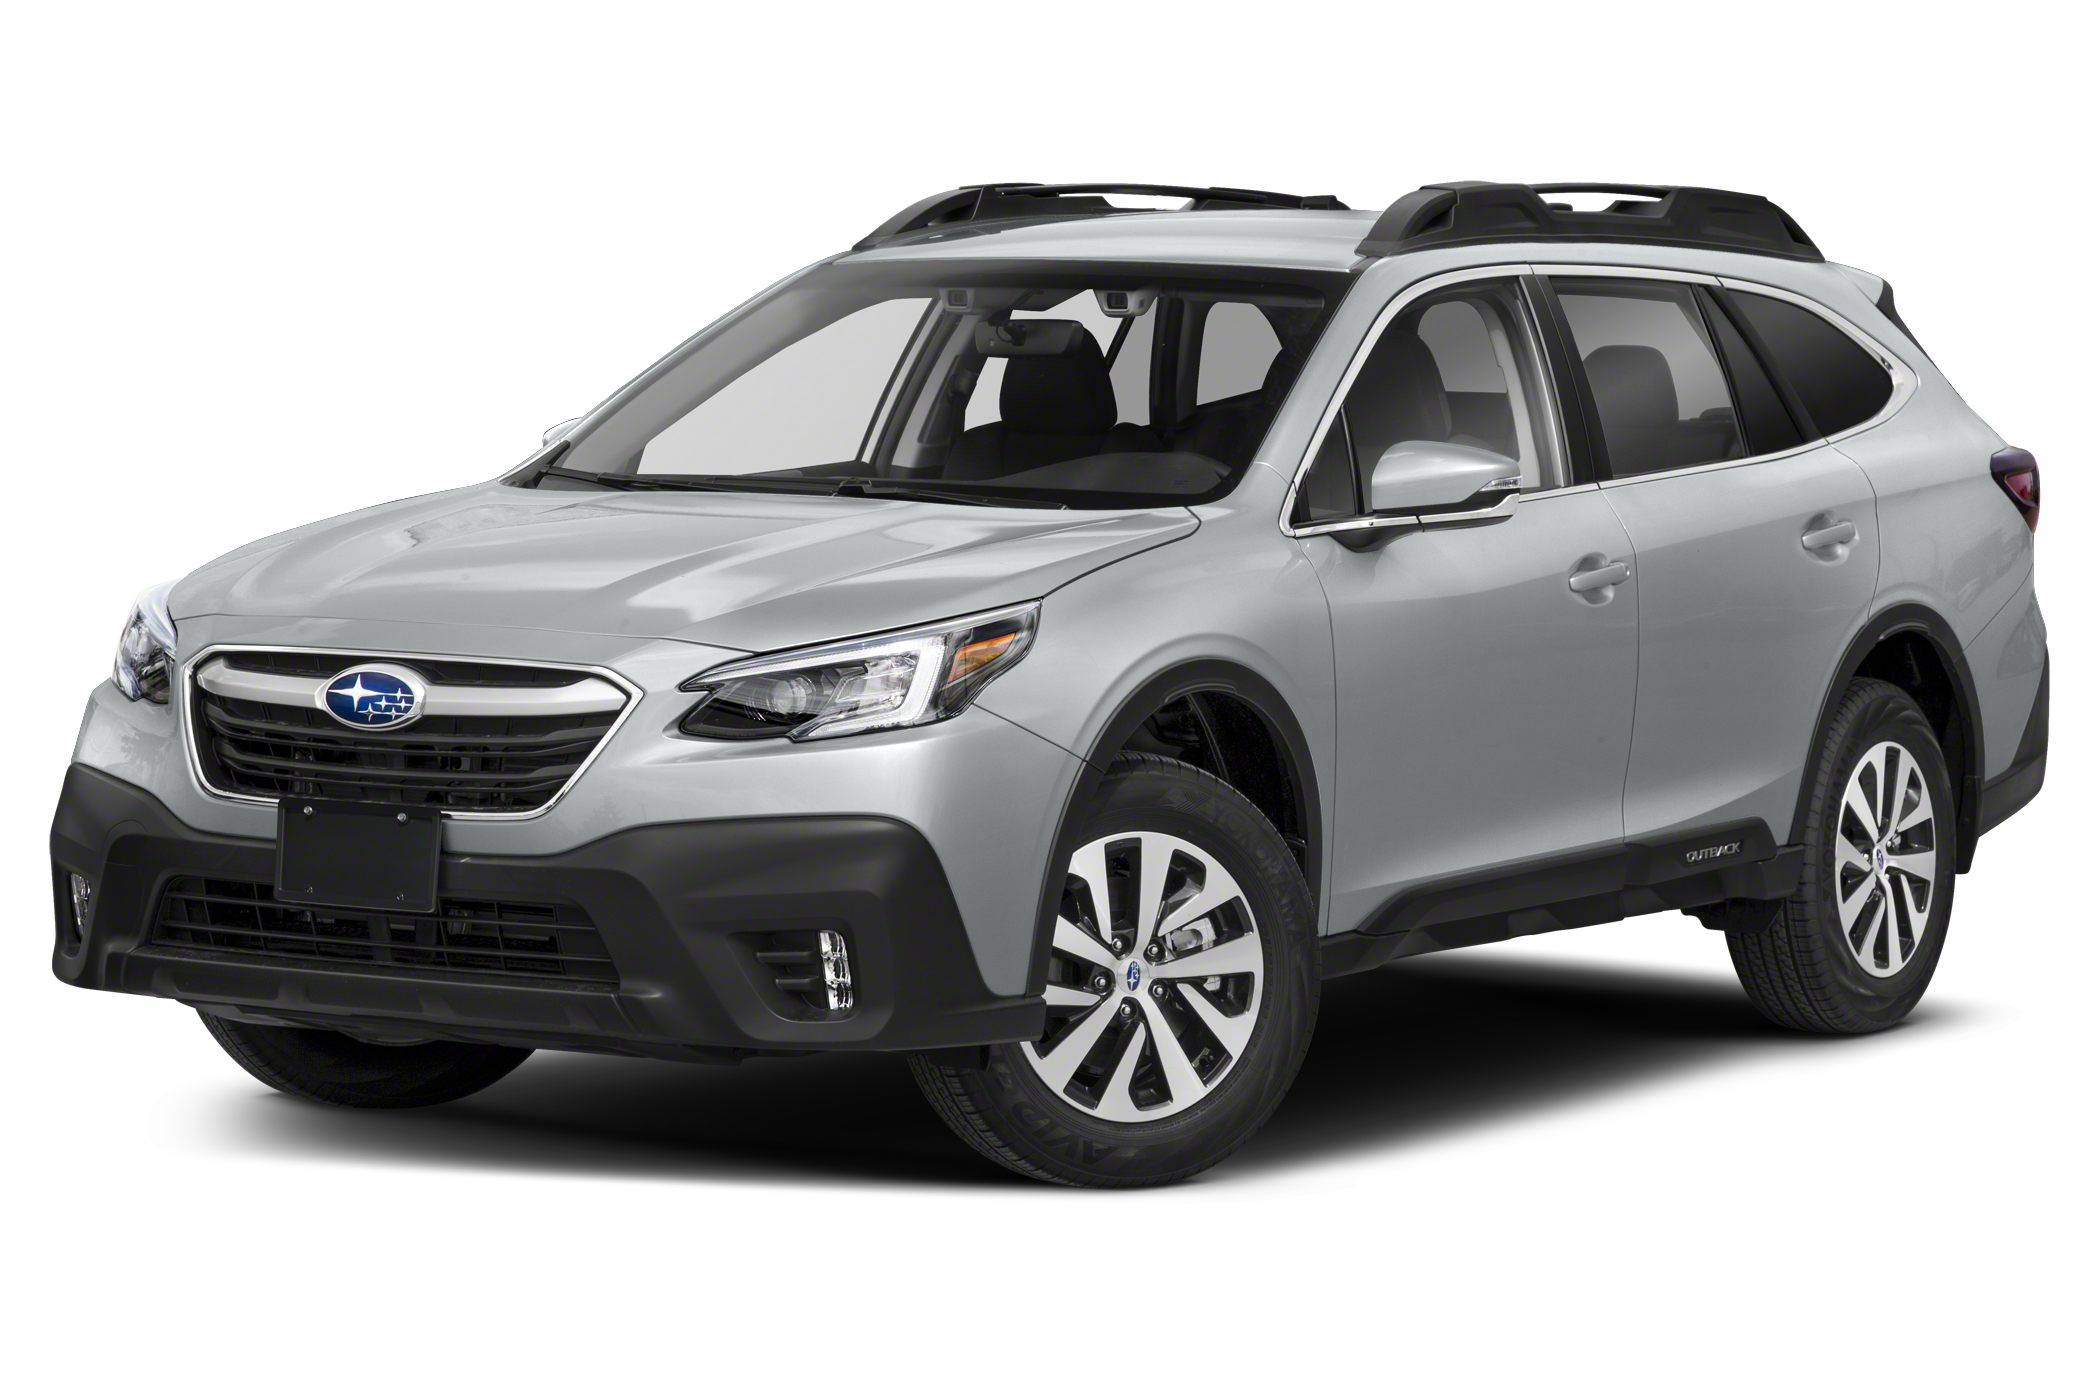 2020 Subaru Outback Onyx Edition Xt 4dr All Wheel Drive Pictures